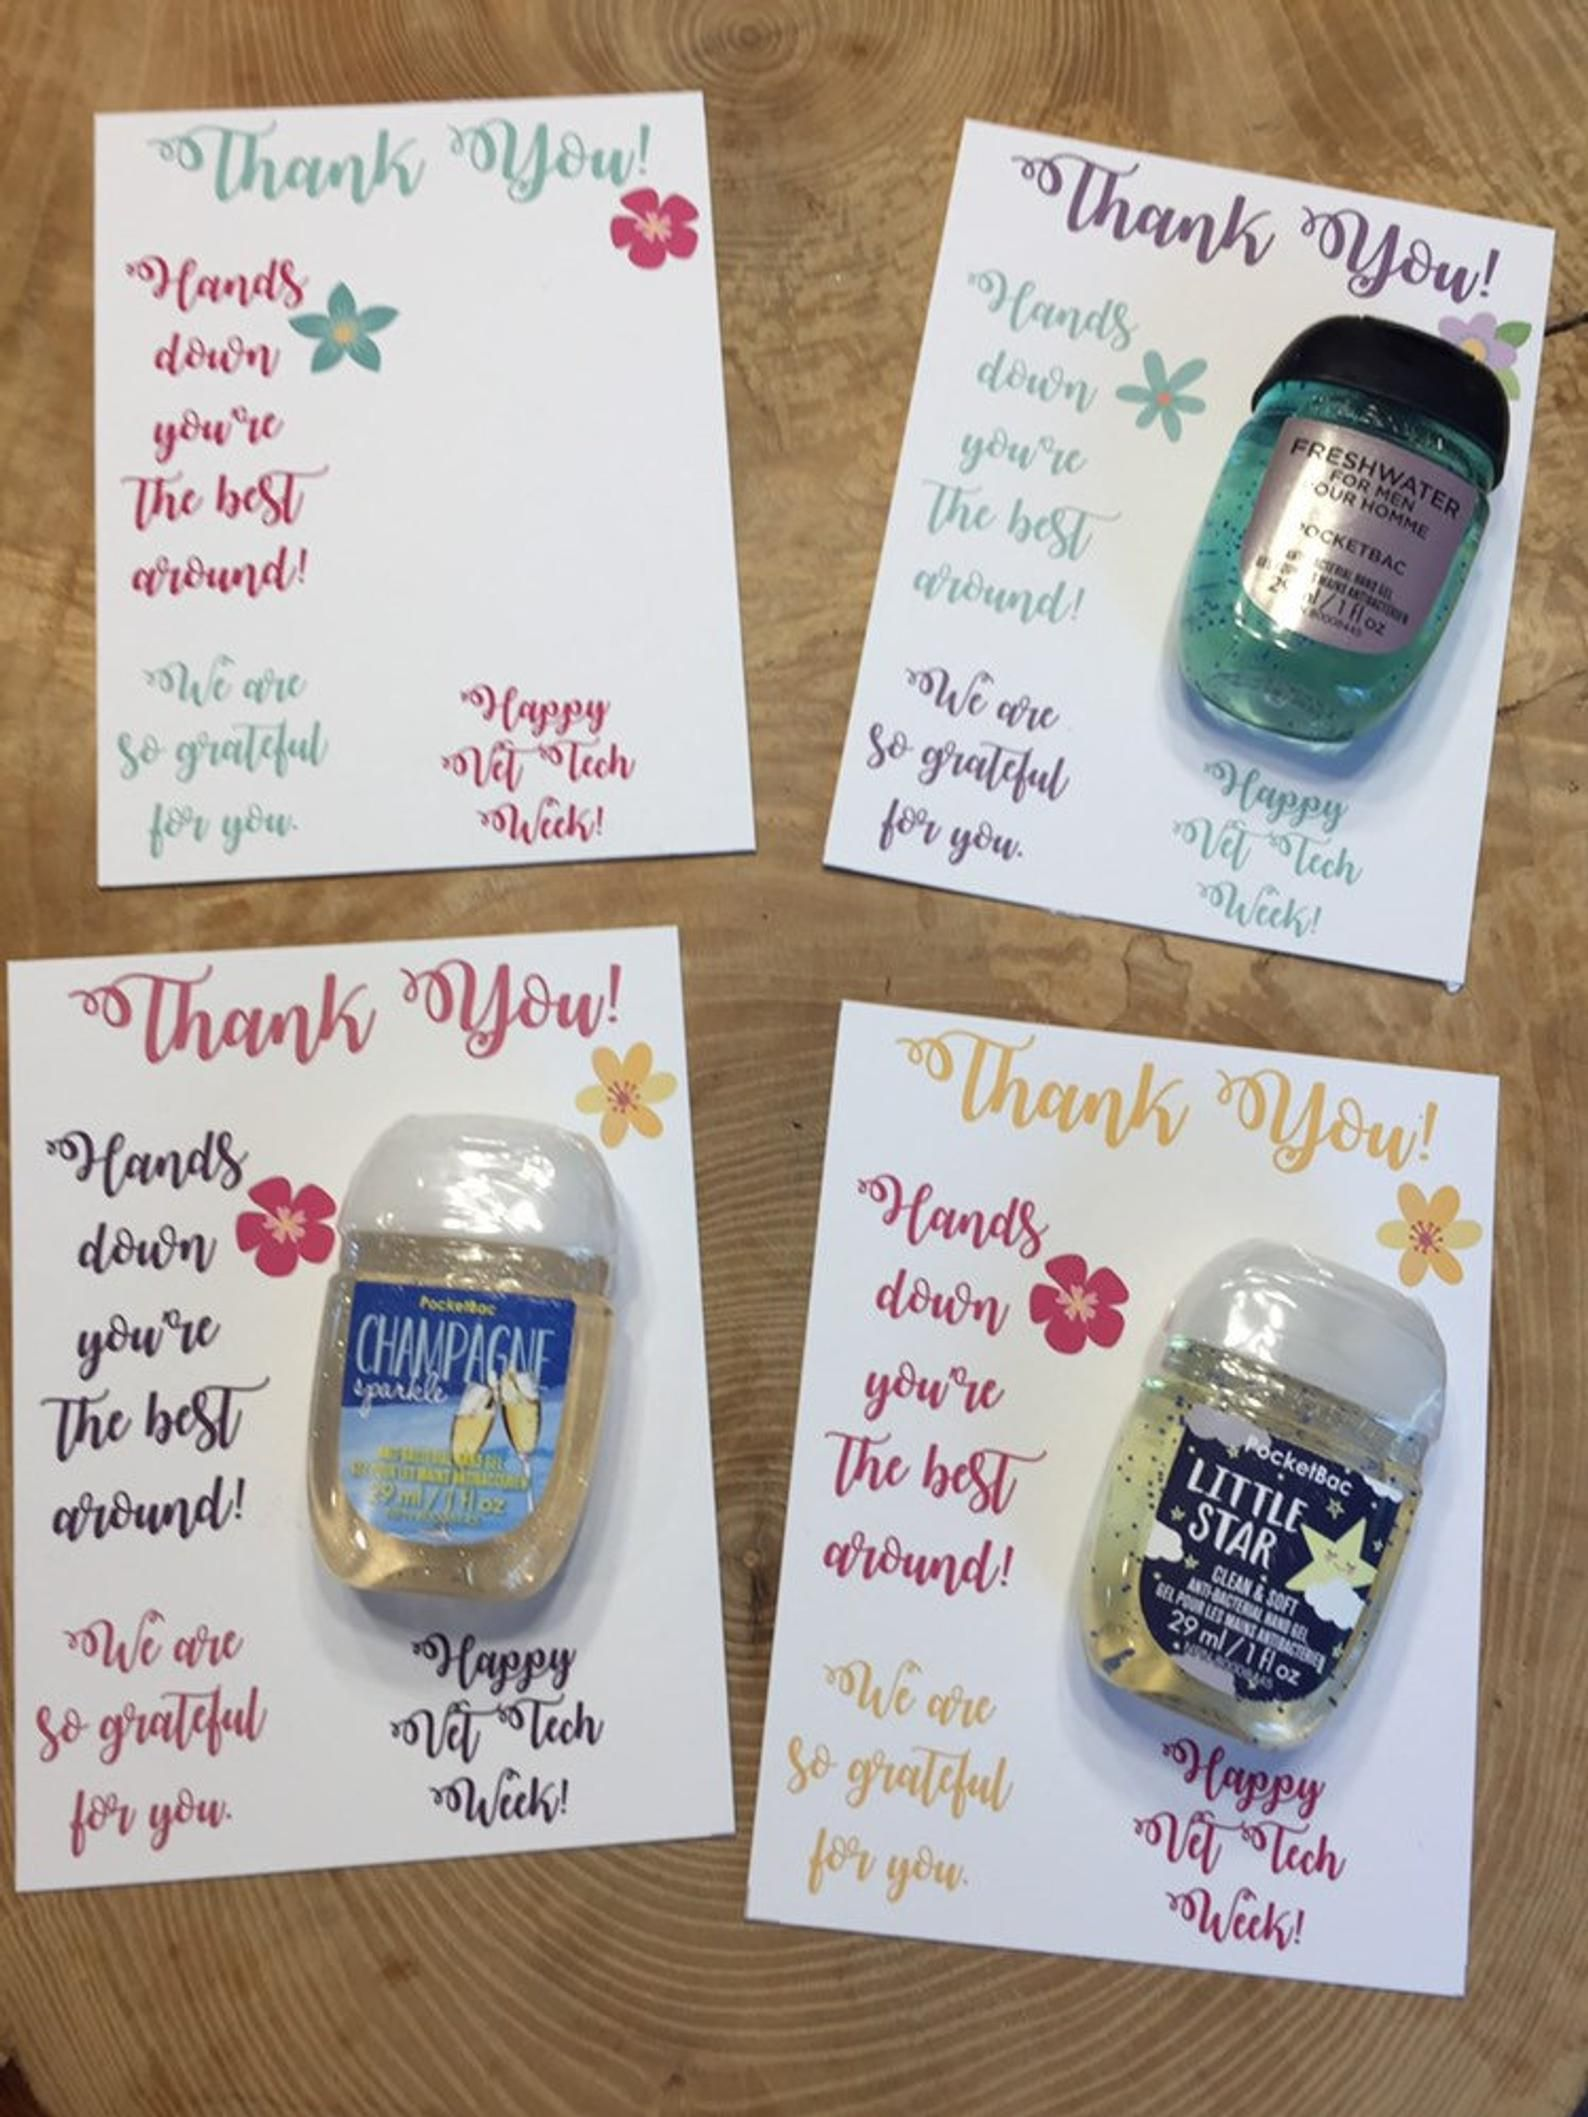 Vet Tech Week, appreciation, thank you cards for h